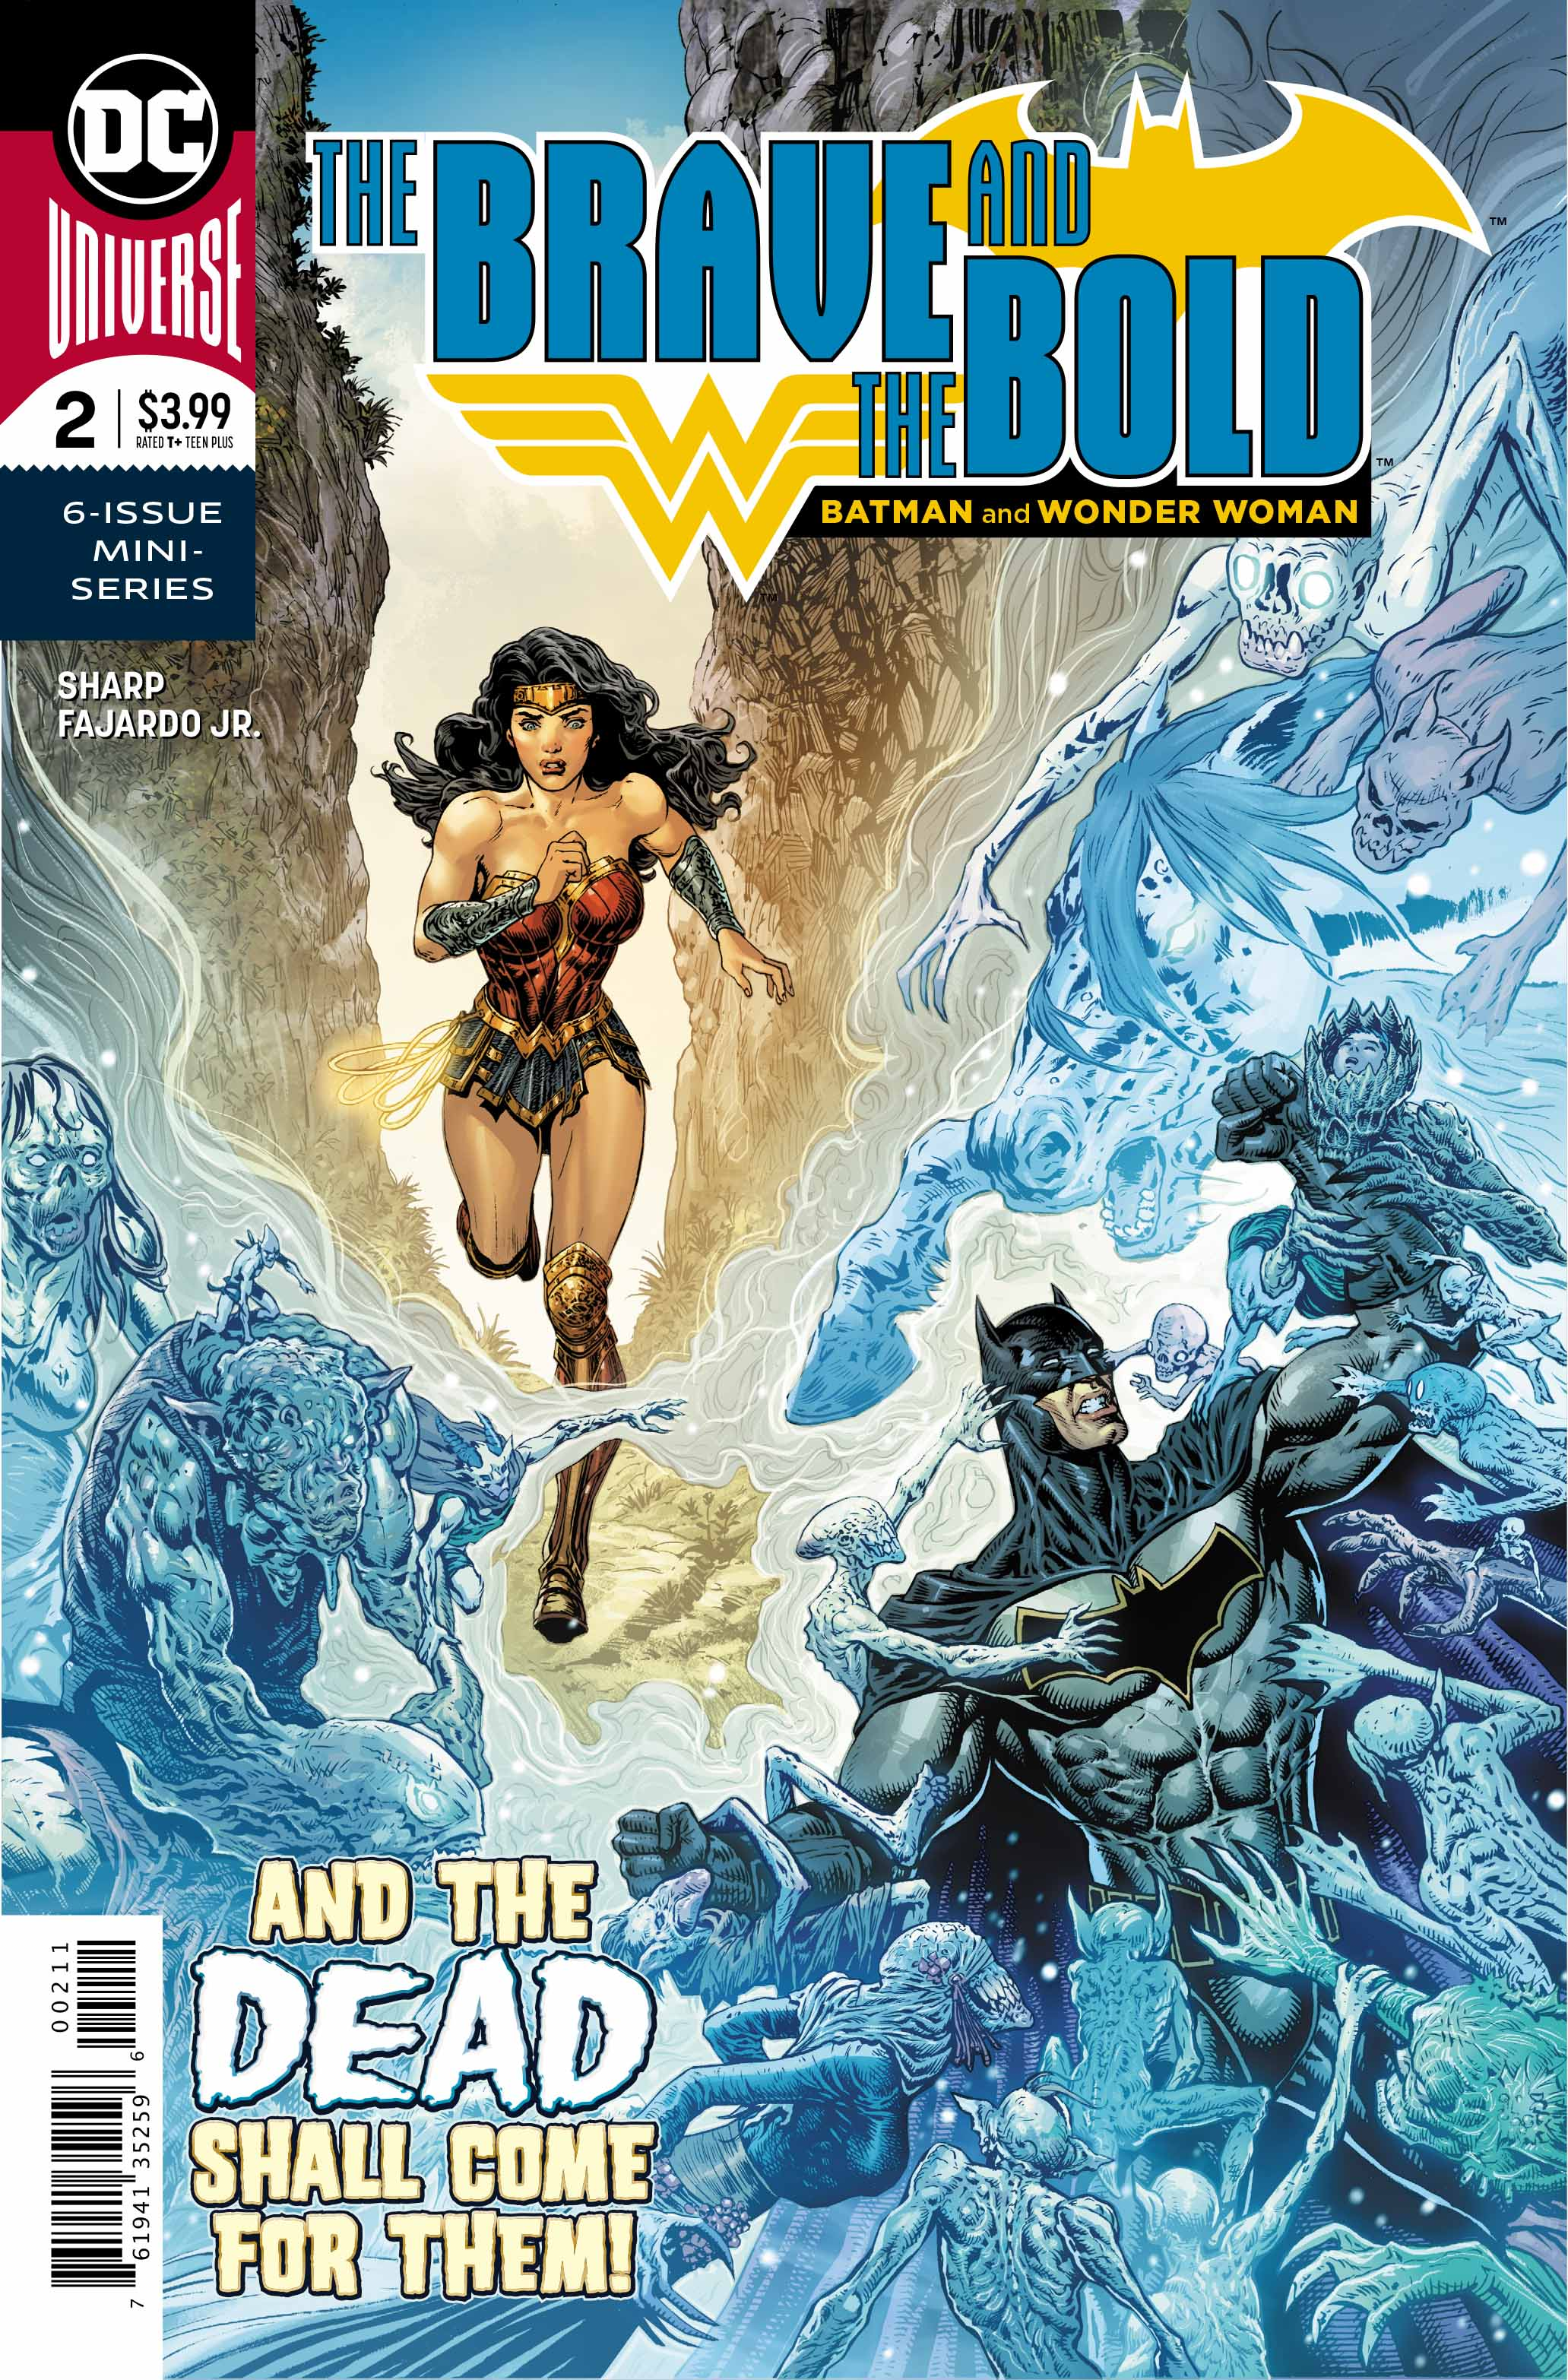 The Brave and The Bold: Batman and Wonder Woman #2 Review